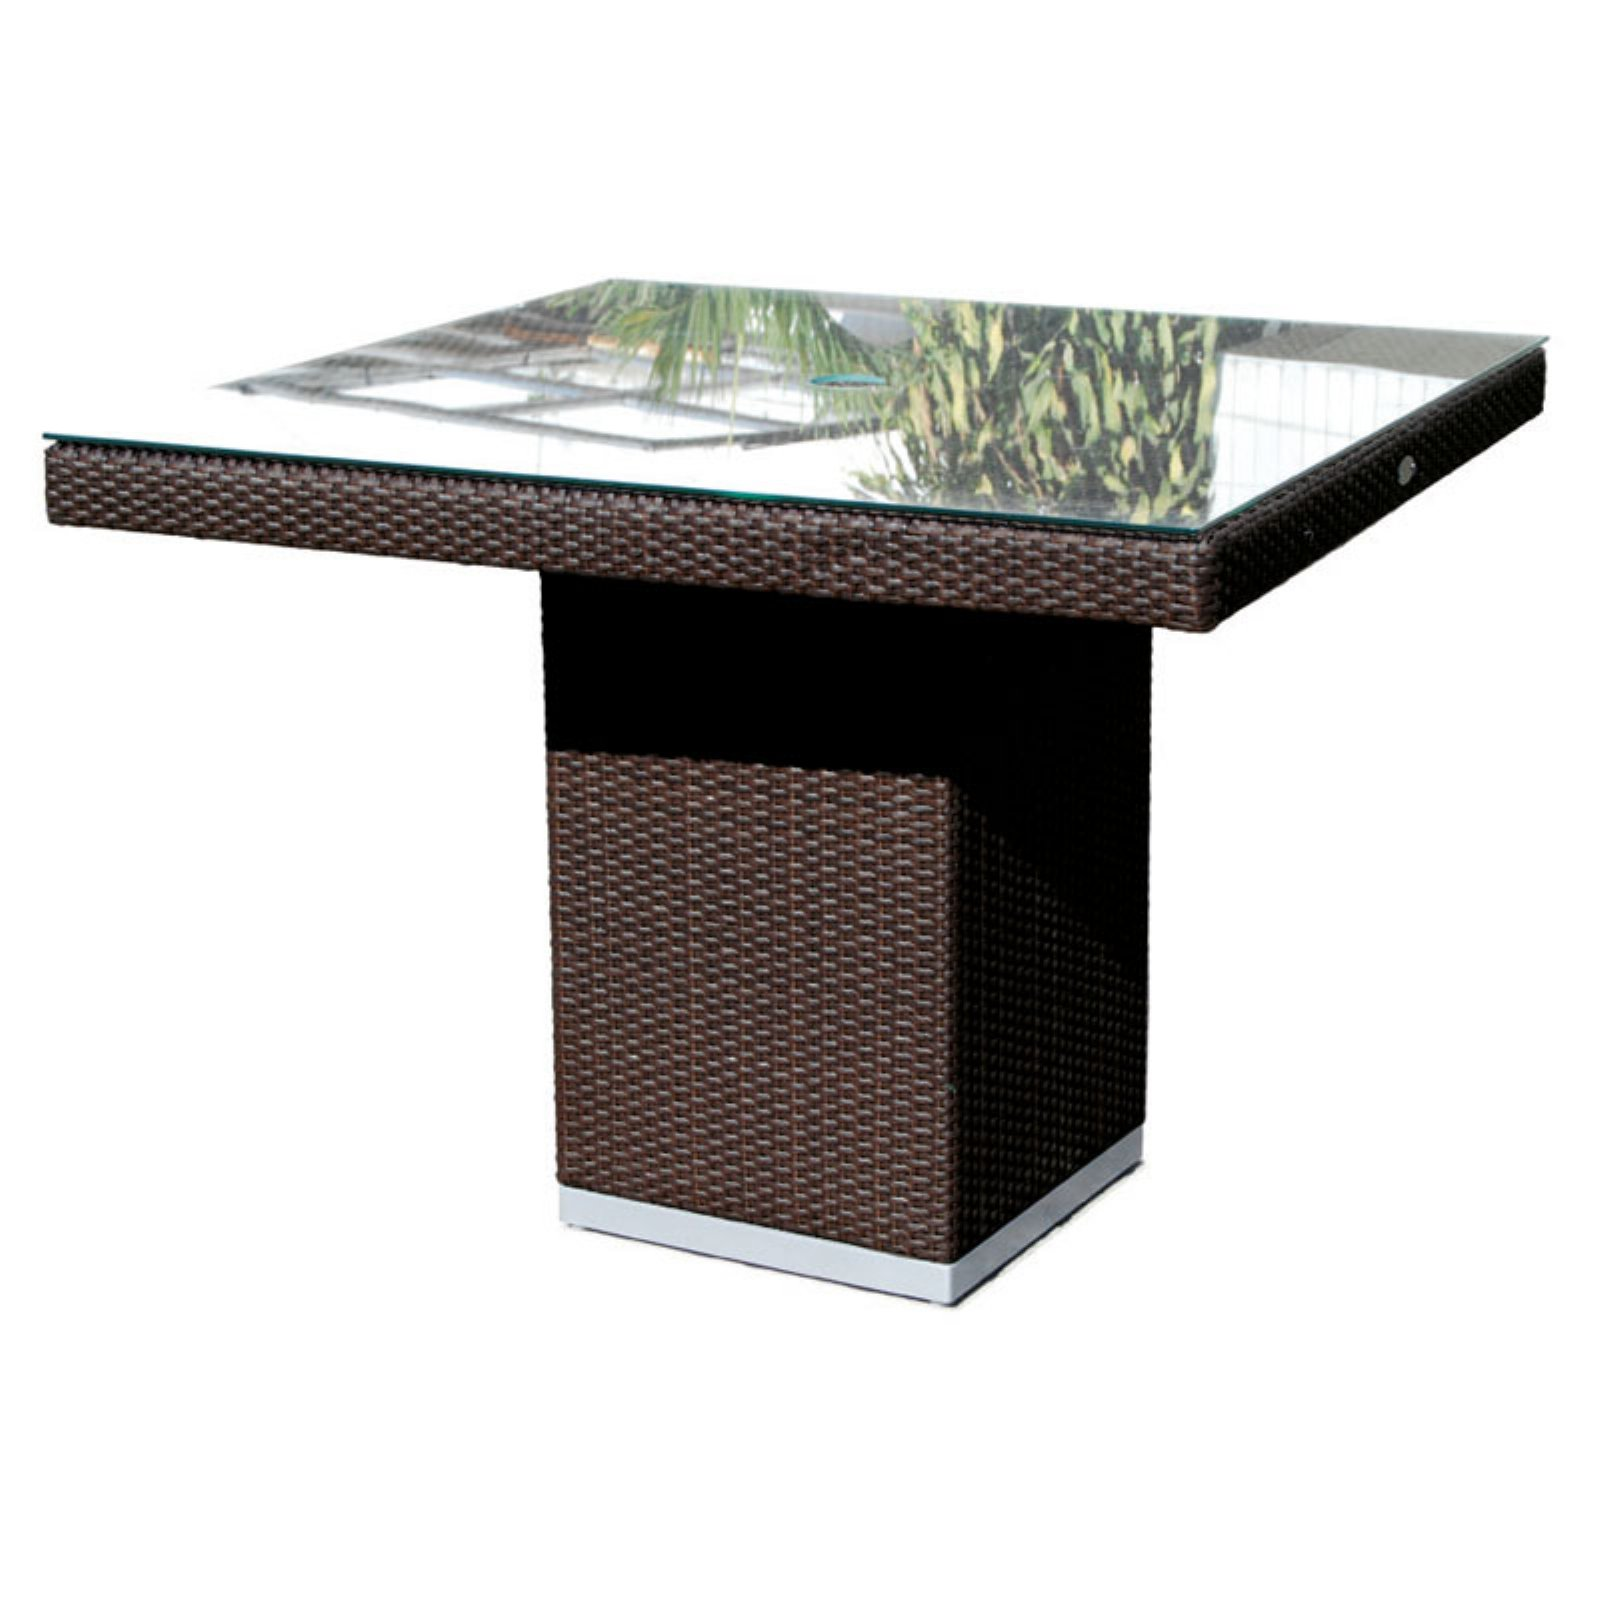 Hospitality Rattan Sydney Square Dining Table with Optional Glass Top